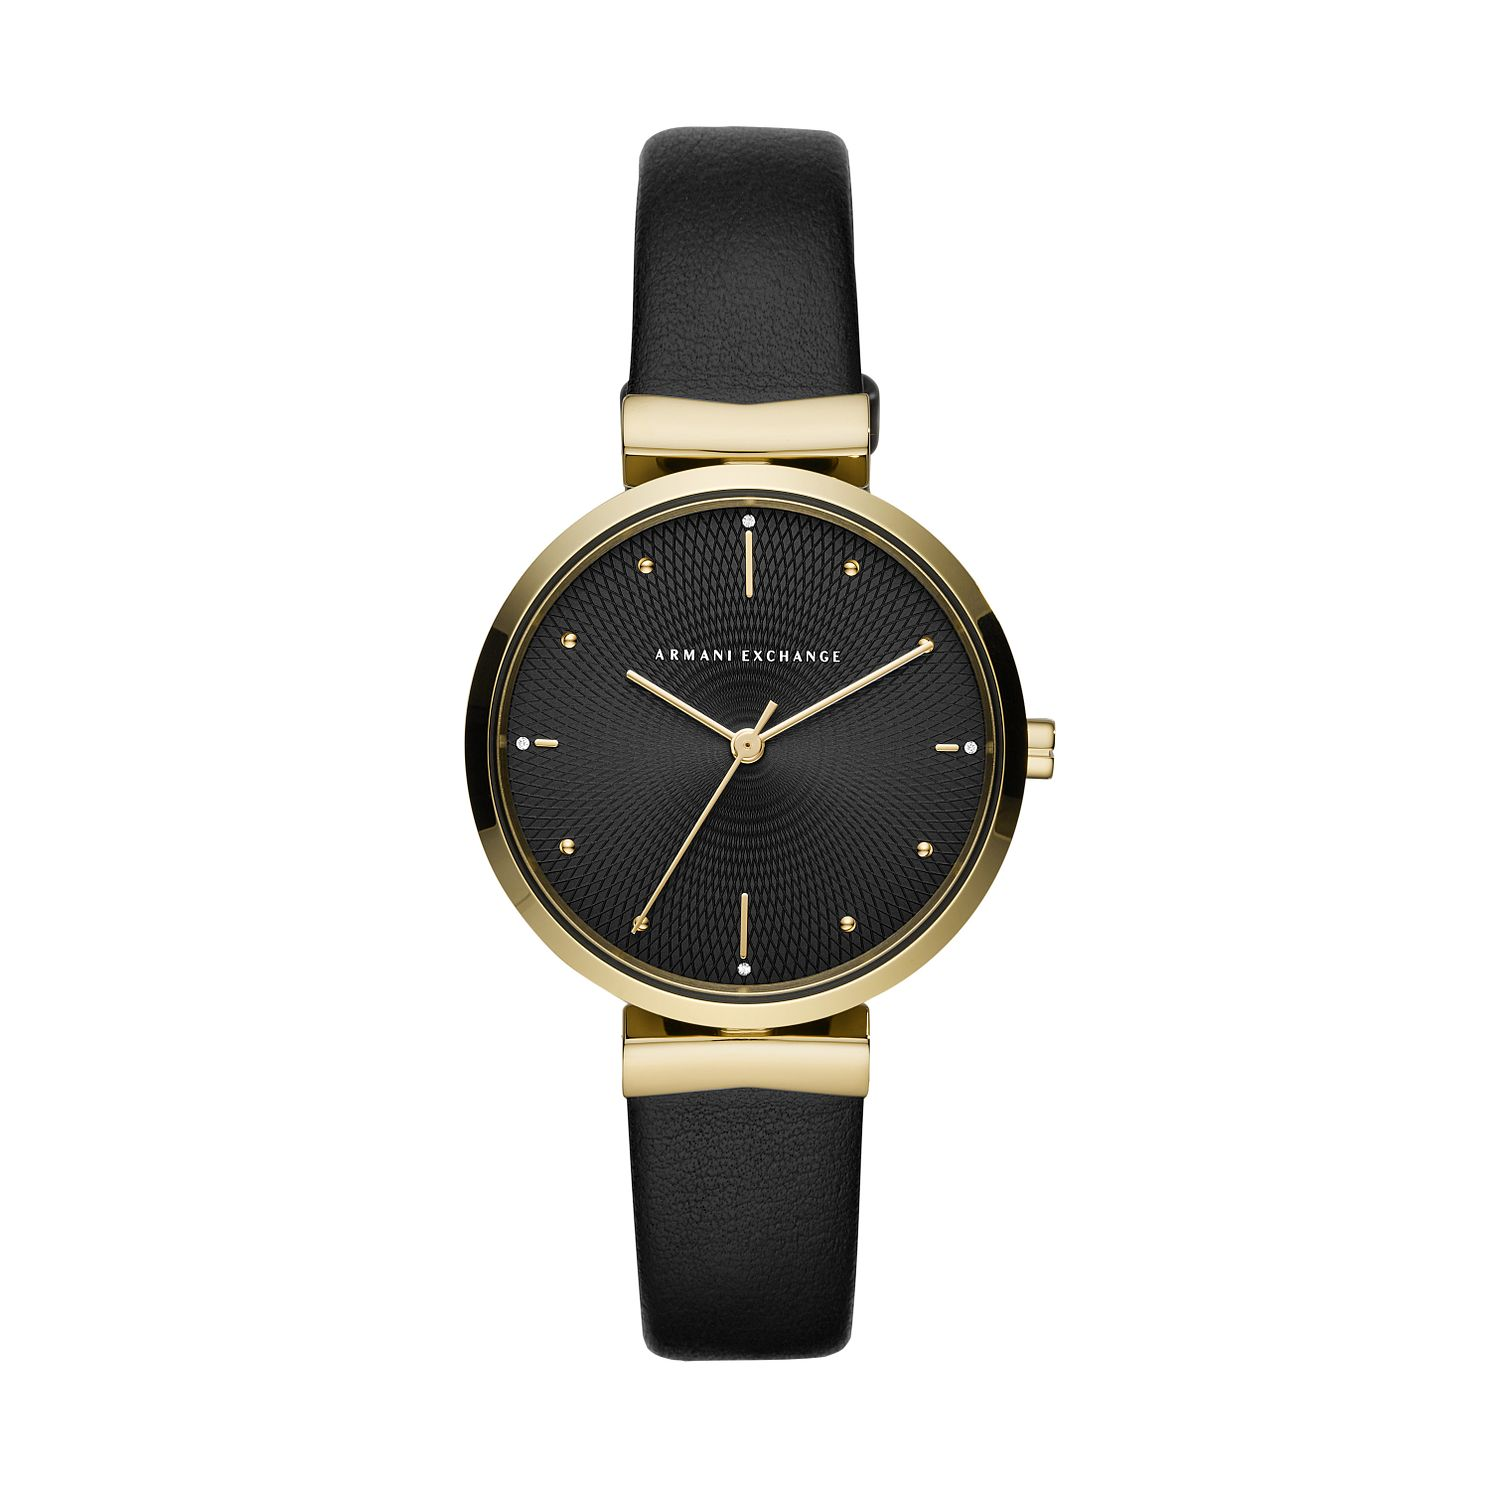 Armani Exchange Ladies' Black Leather Strap Watch - Product number 4852591